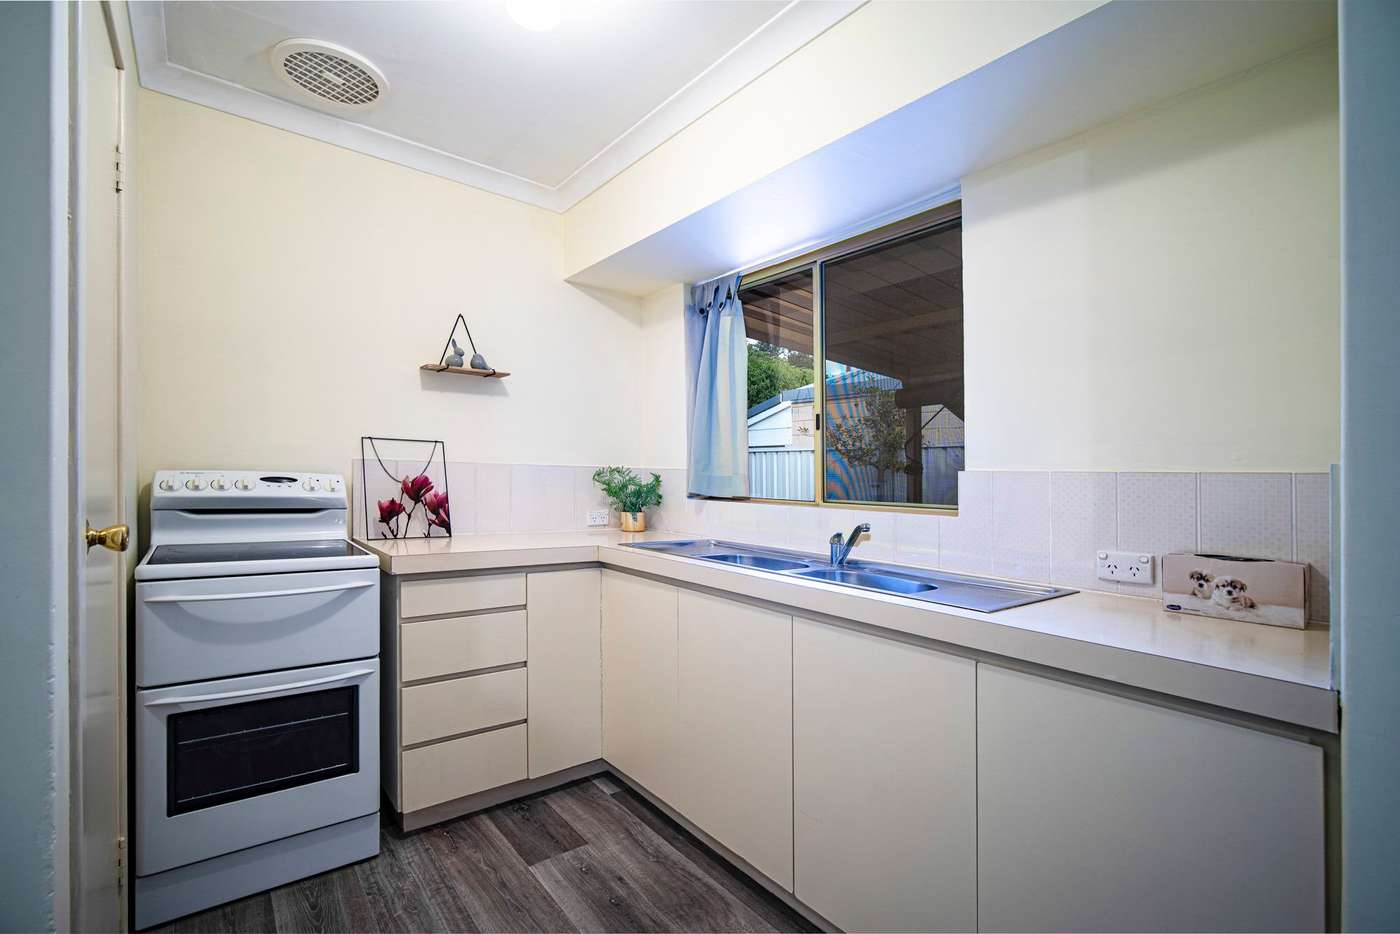 Sixth view of Homely house listing, 7/6 Helena Street, Guildford WA 6055